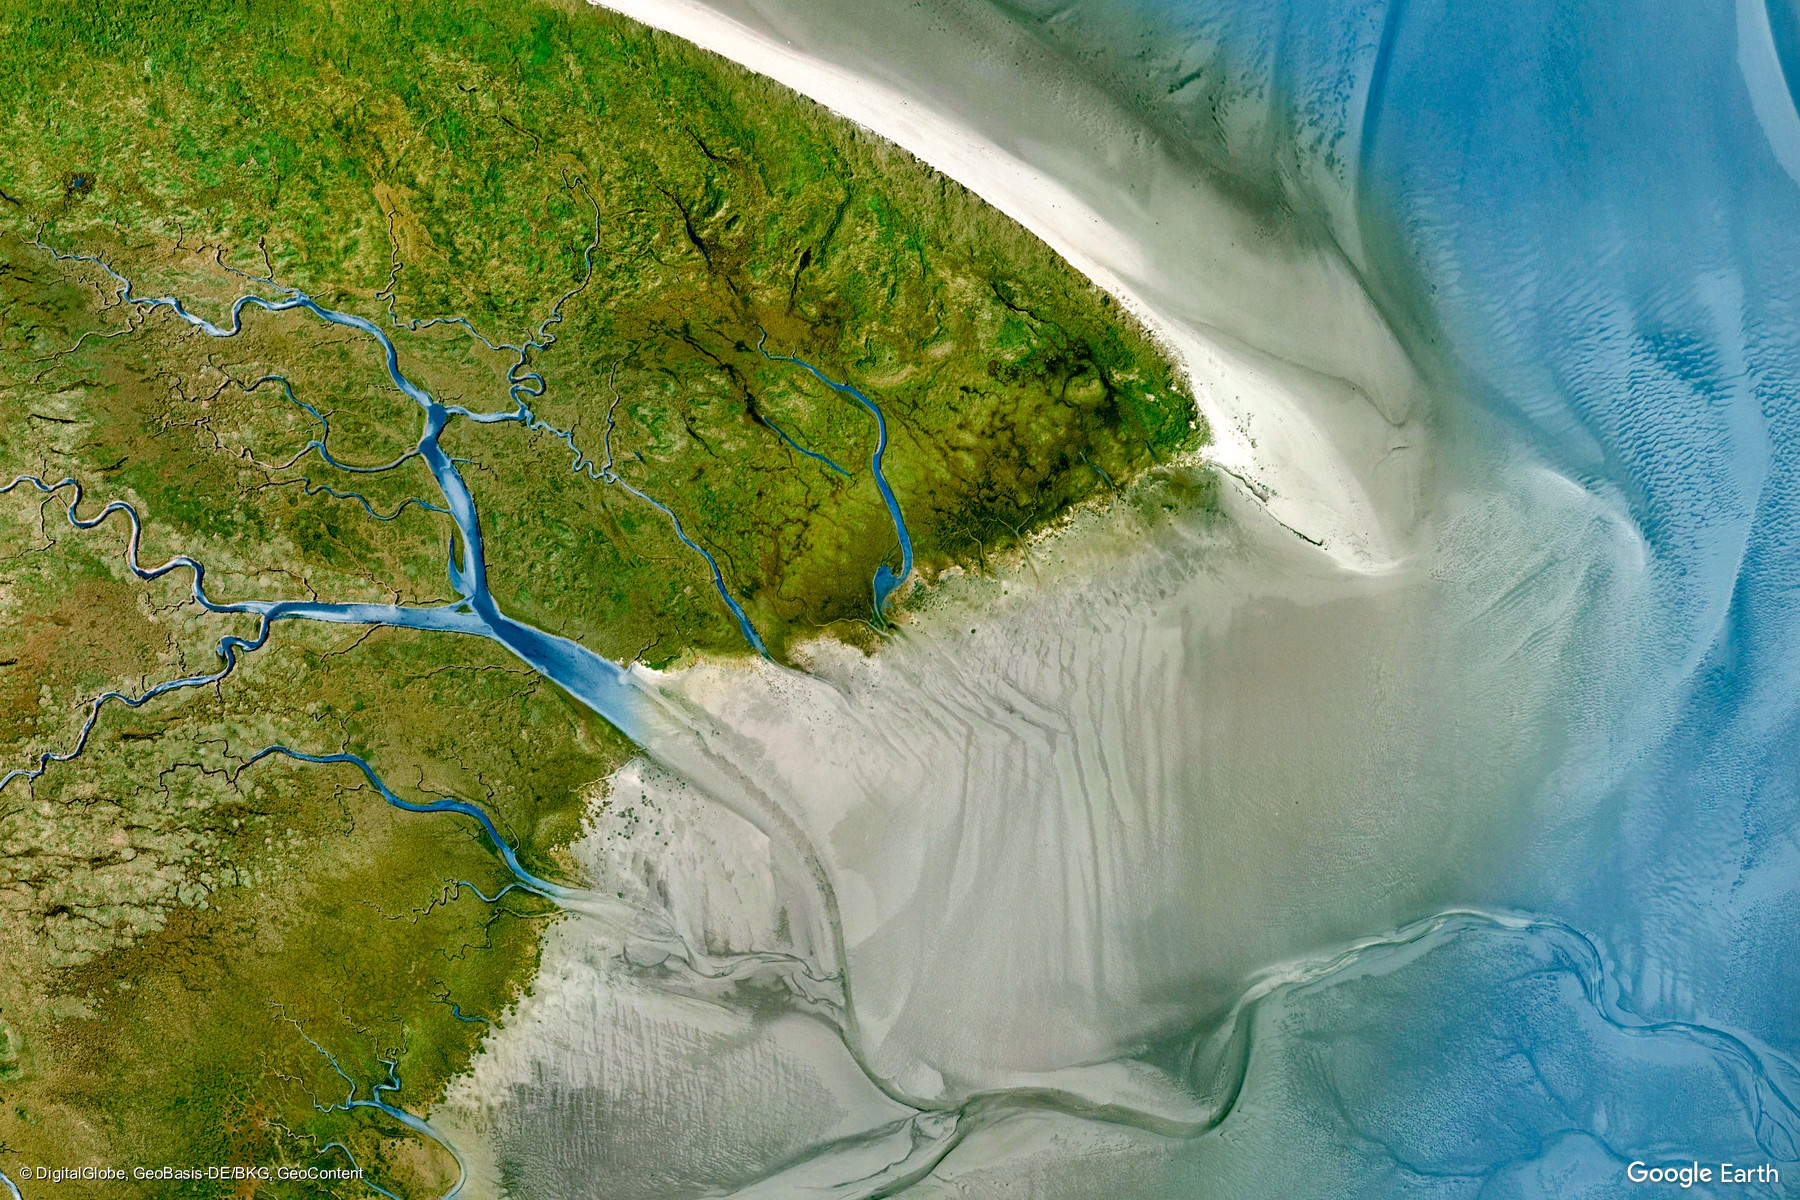 Wangerland Germany Earth View From Google - Google maps earth view